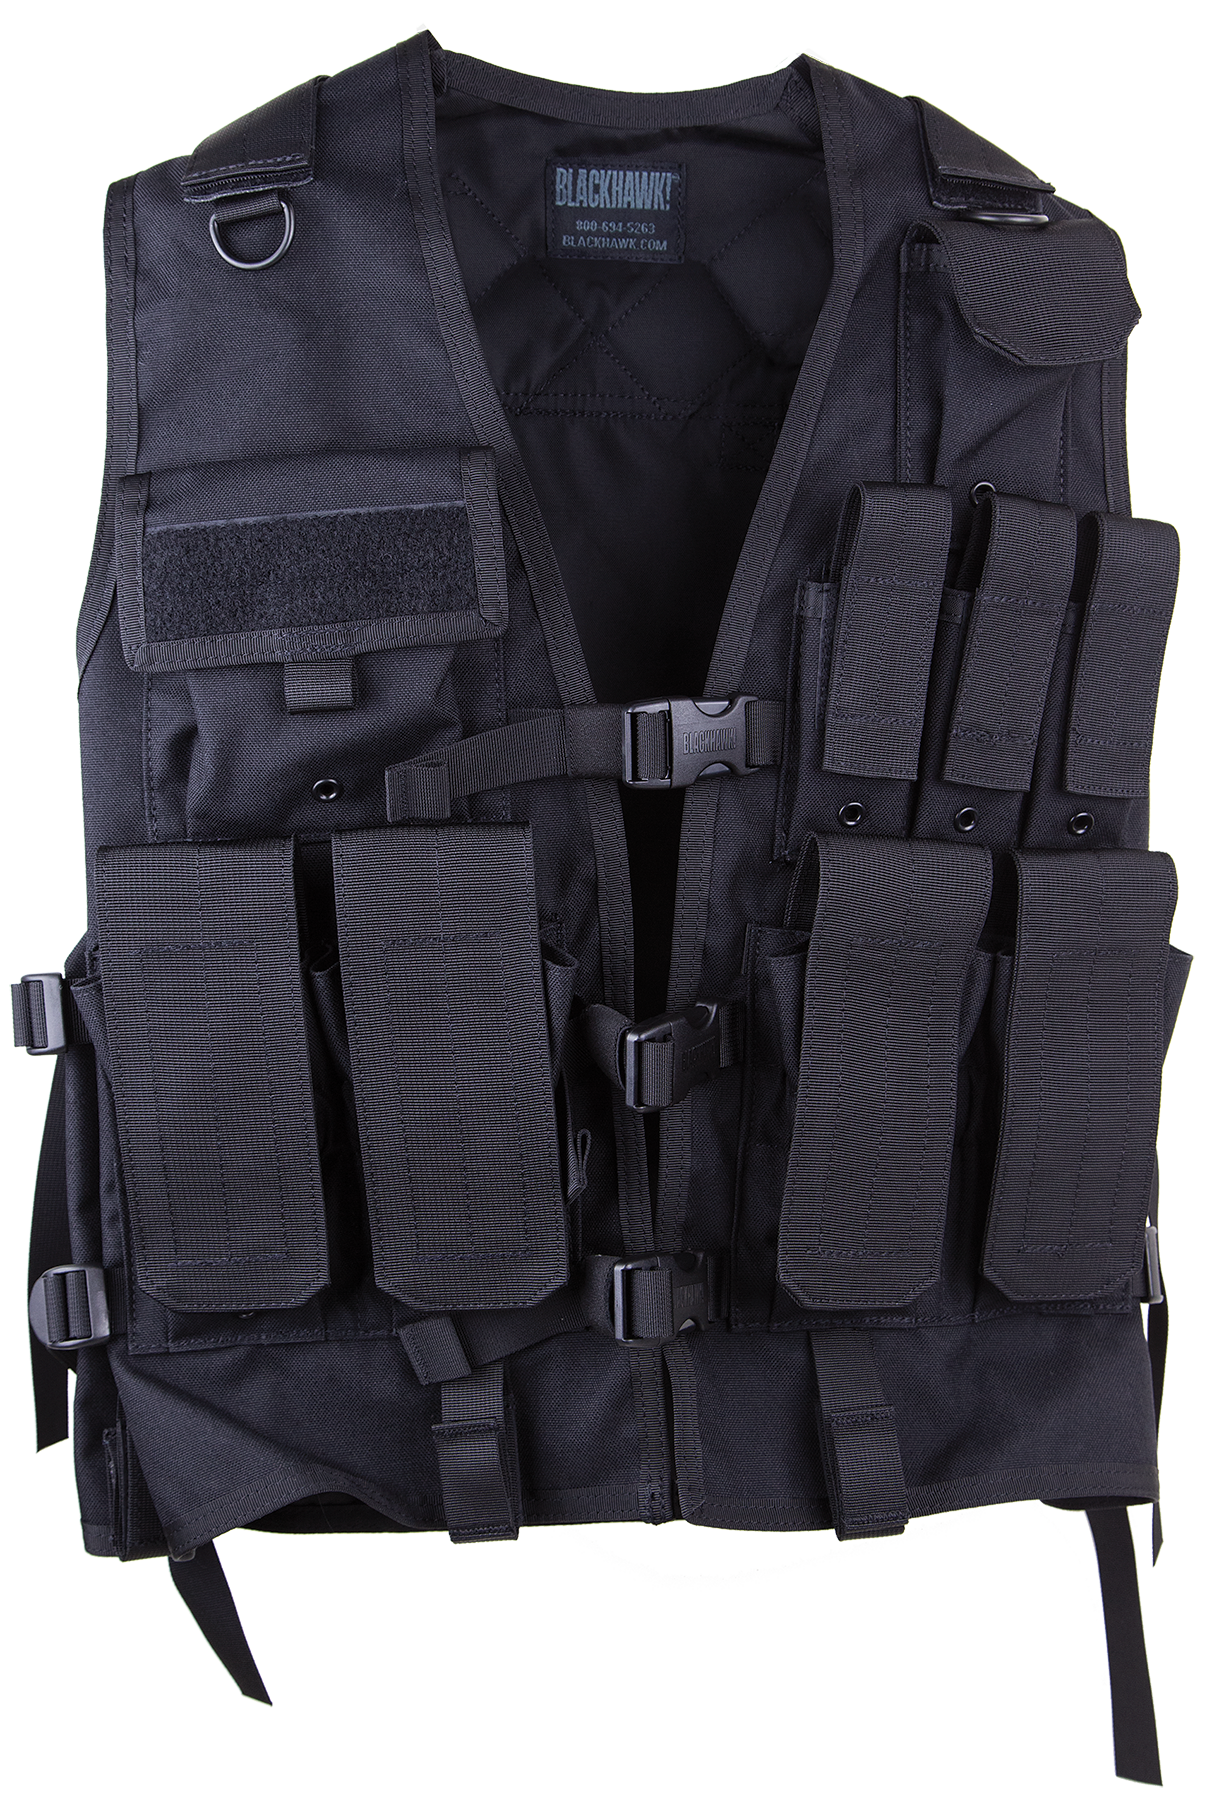 Blackhawk Urban Tactical Vest 33UA00BK Urban Assault Black Adjustable Nylon